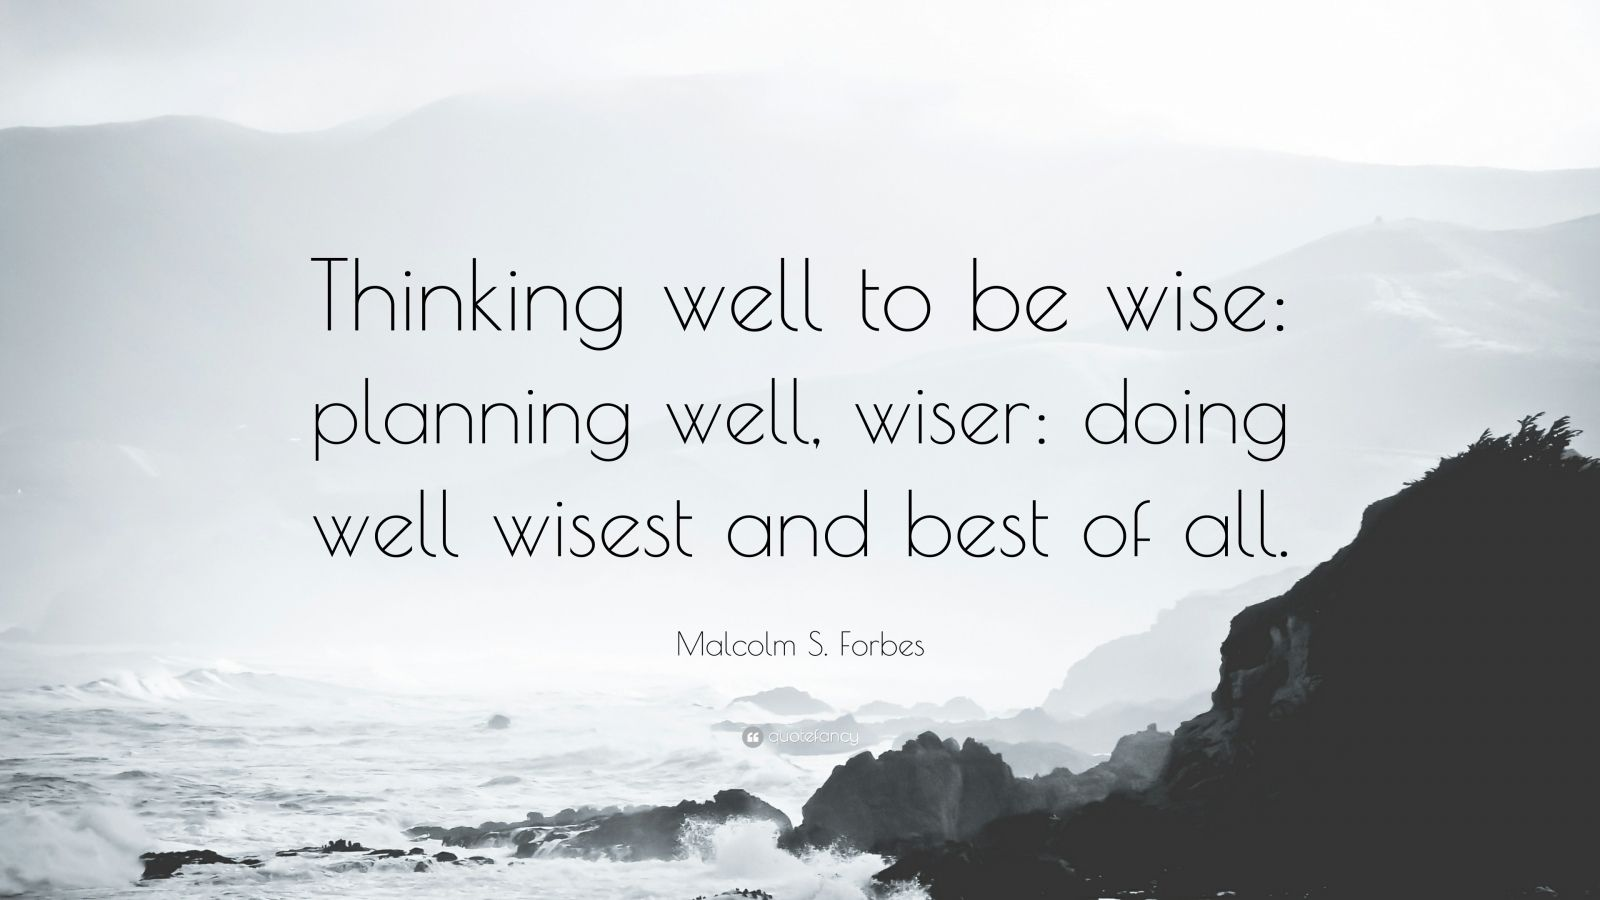 """Malcolm S. Forbes Quote: """"Thinking well to be wise: planning well, wiser: doing well wisest and best of all."""""""